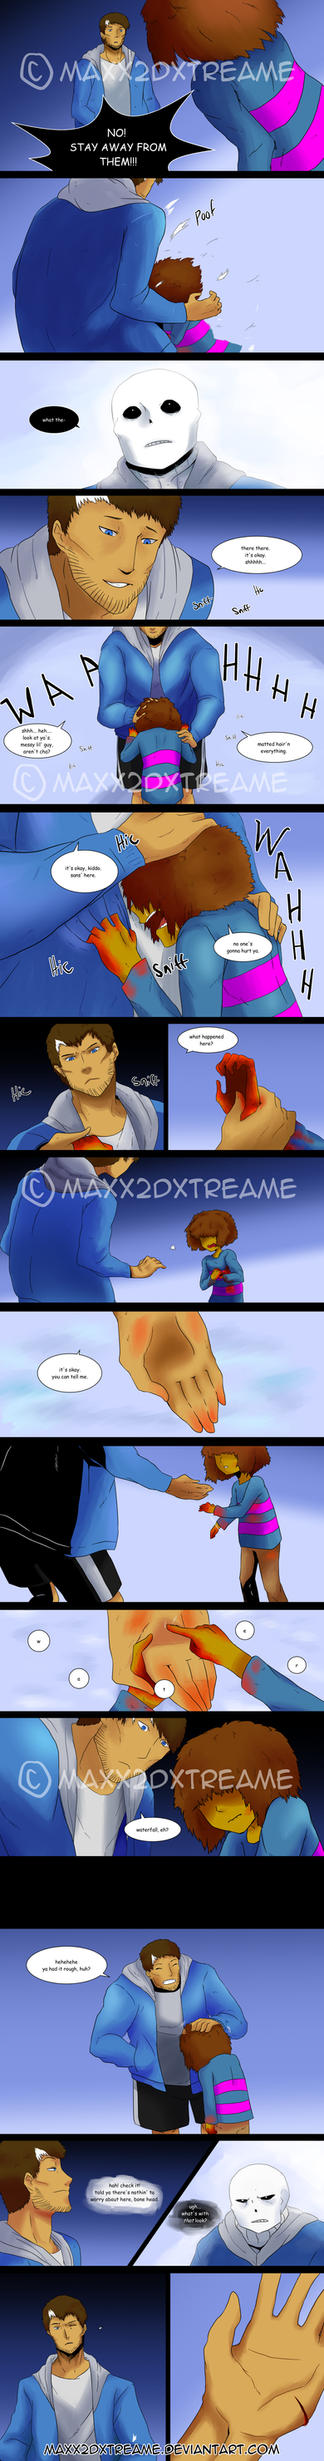 [Undertale] Detour pg 18 by Maxx2DXtreame